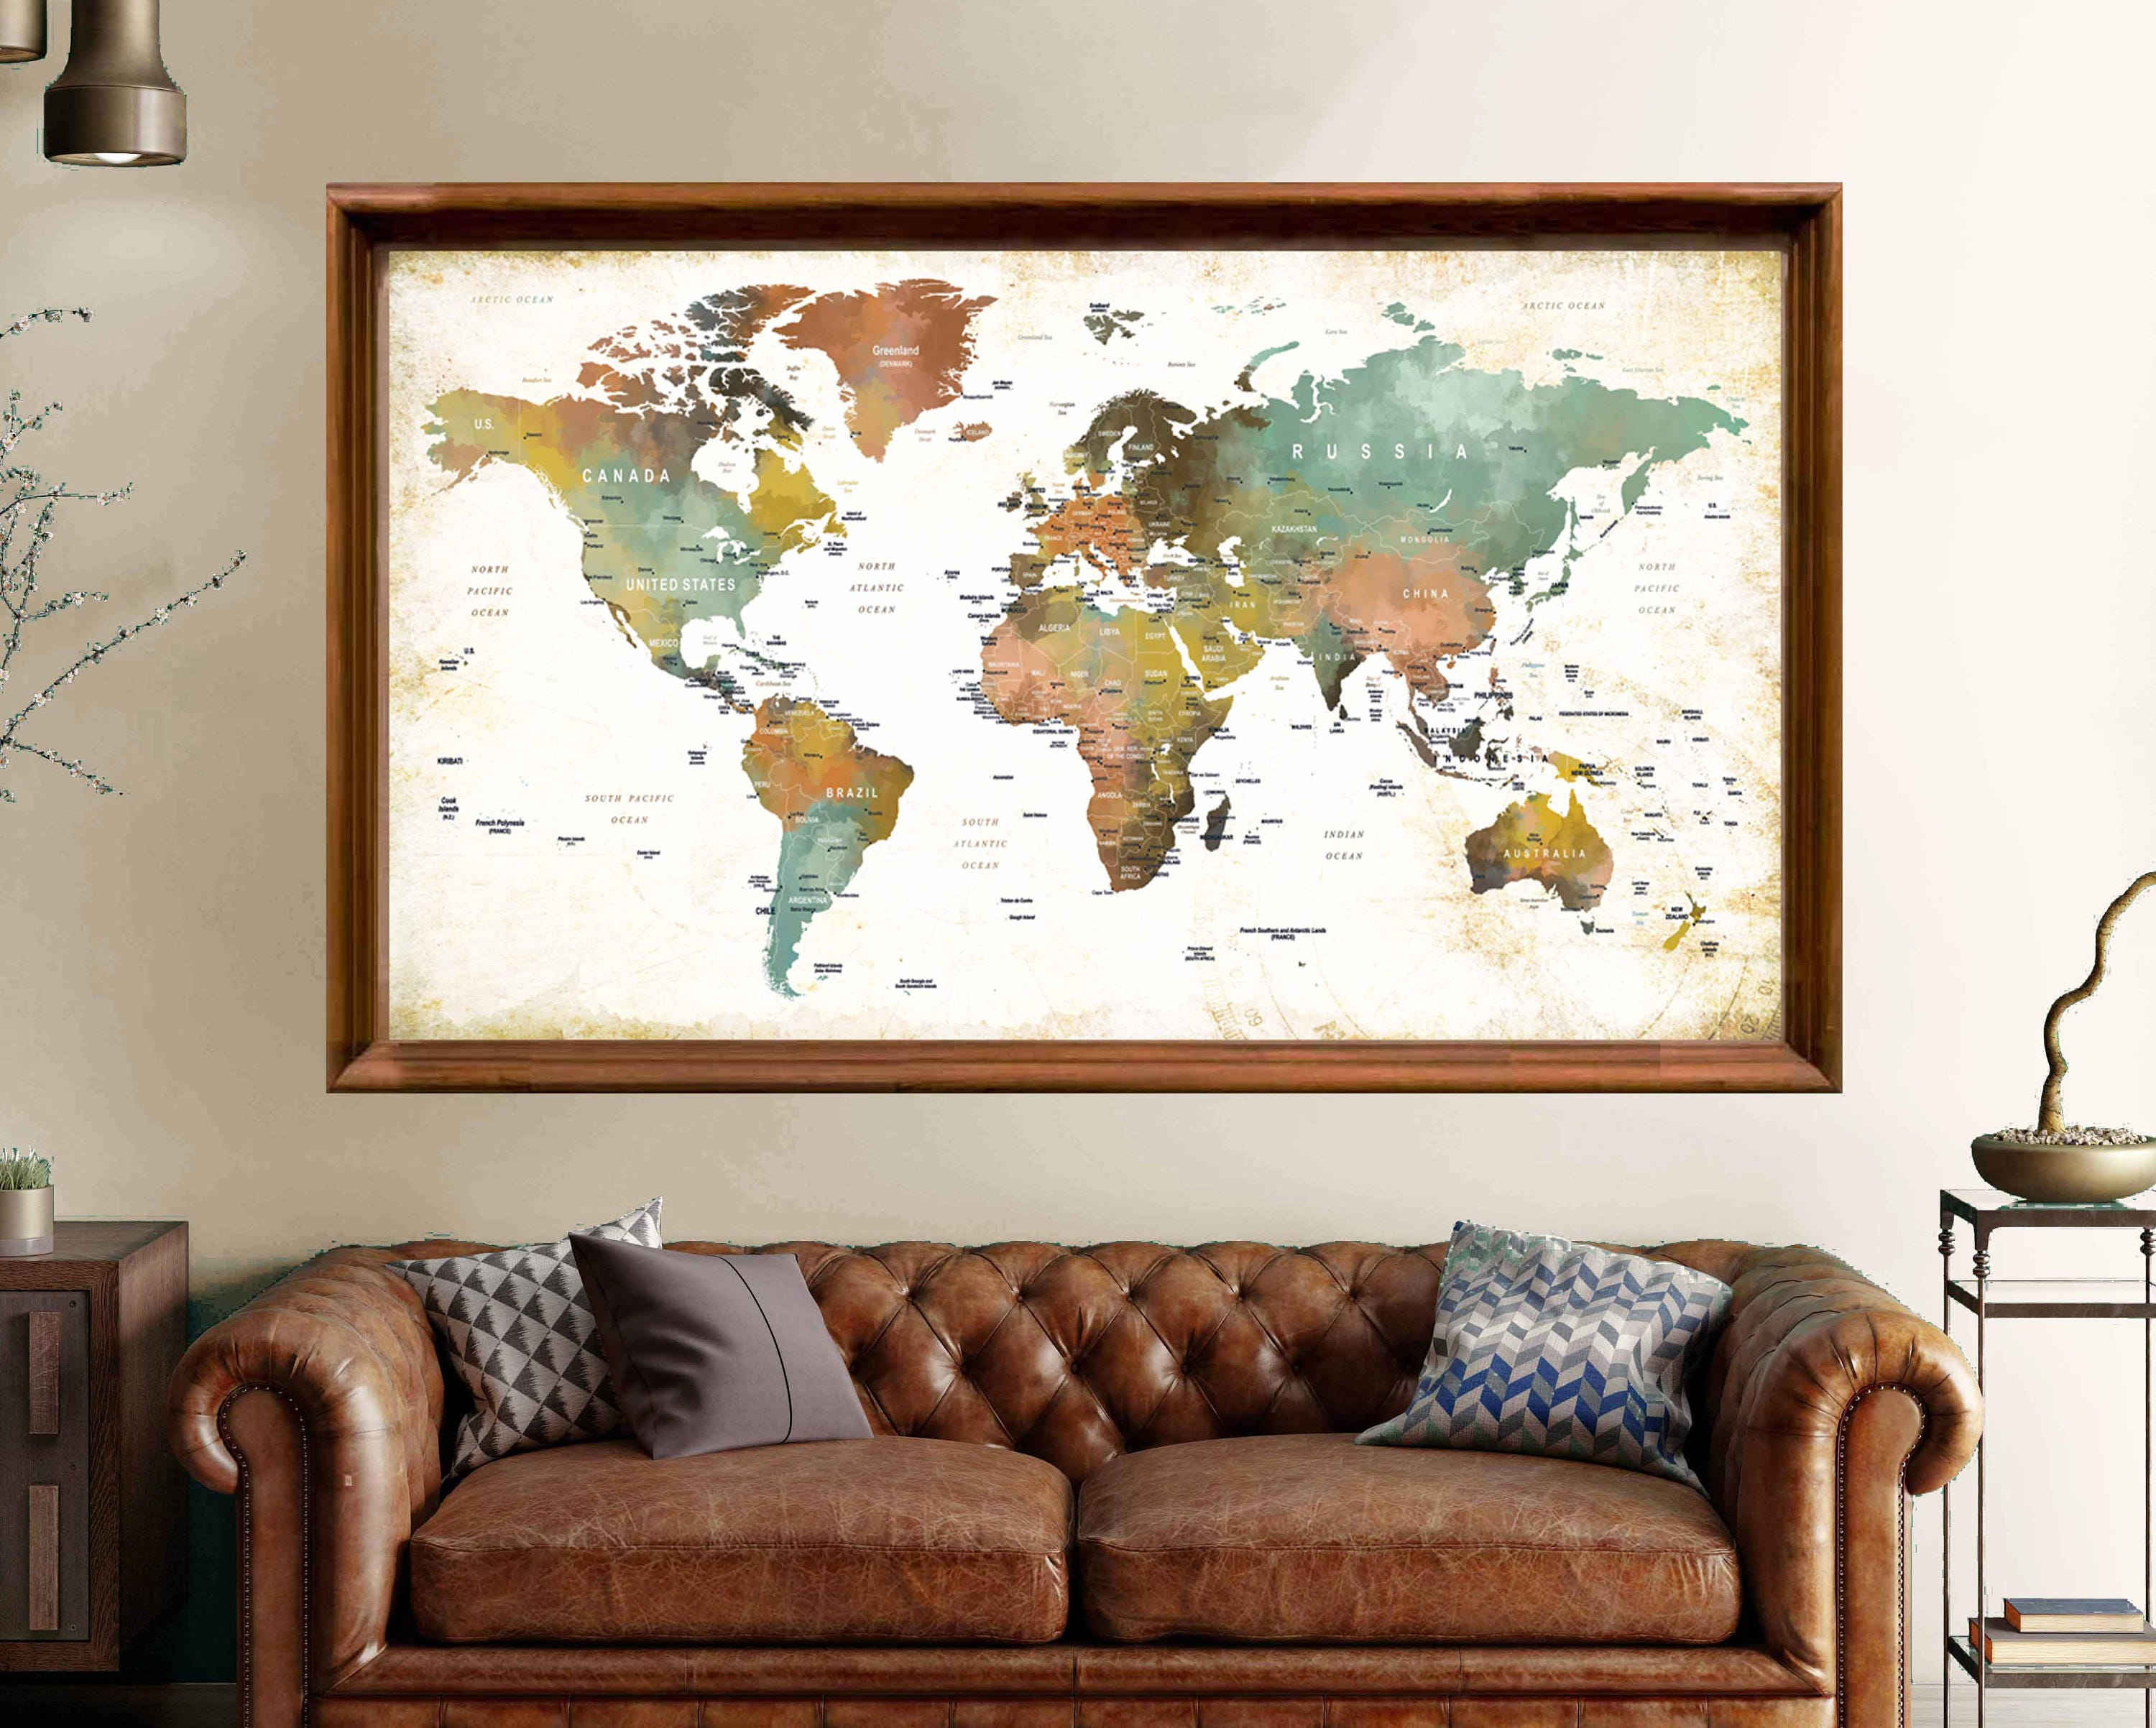 World map poster large printworld map wall artworld map large world map poster large printworld map wall artworld map large printworld map decalworld map poster printworld map printworld map art gumiabroncs Images